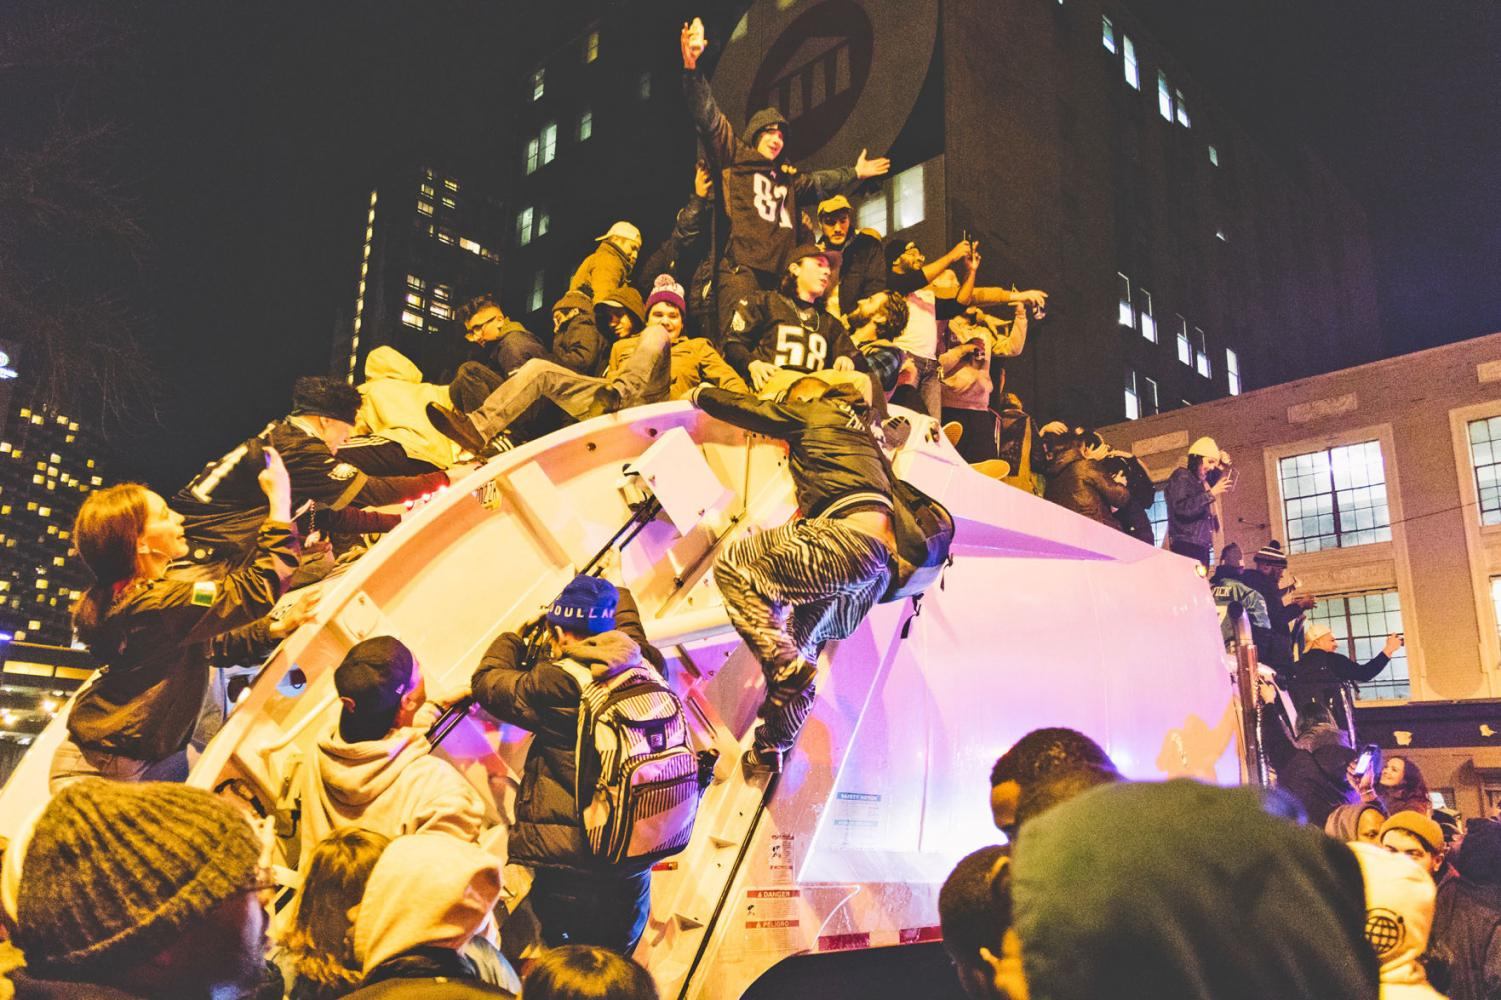 All together there were only four arrests made during the riots in Philadelphia after the Super Bowl.